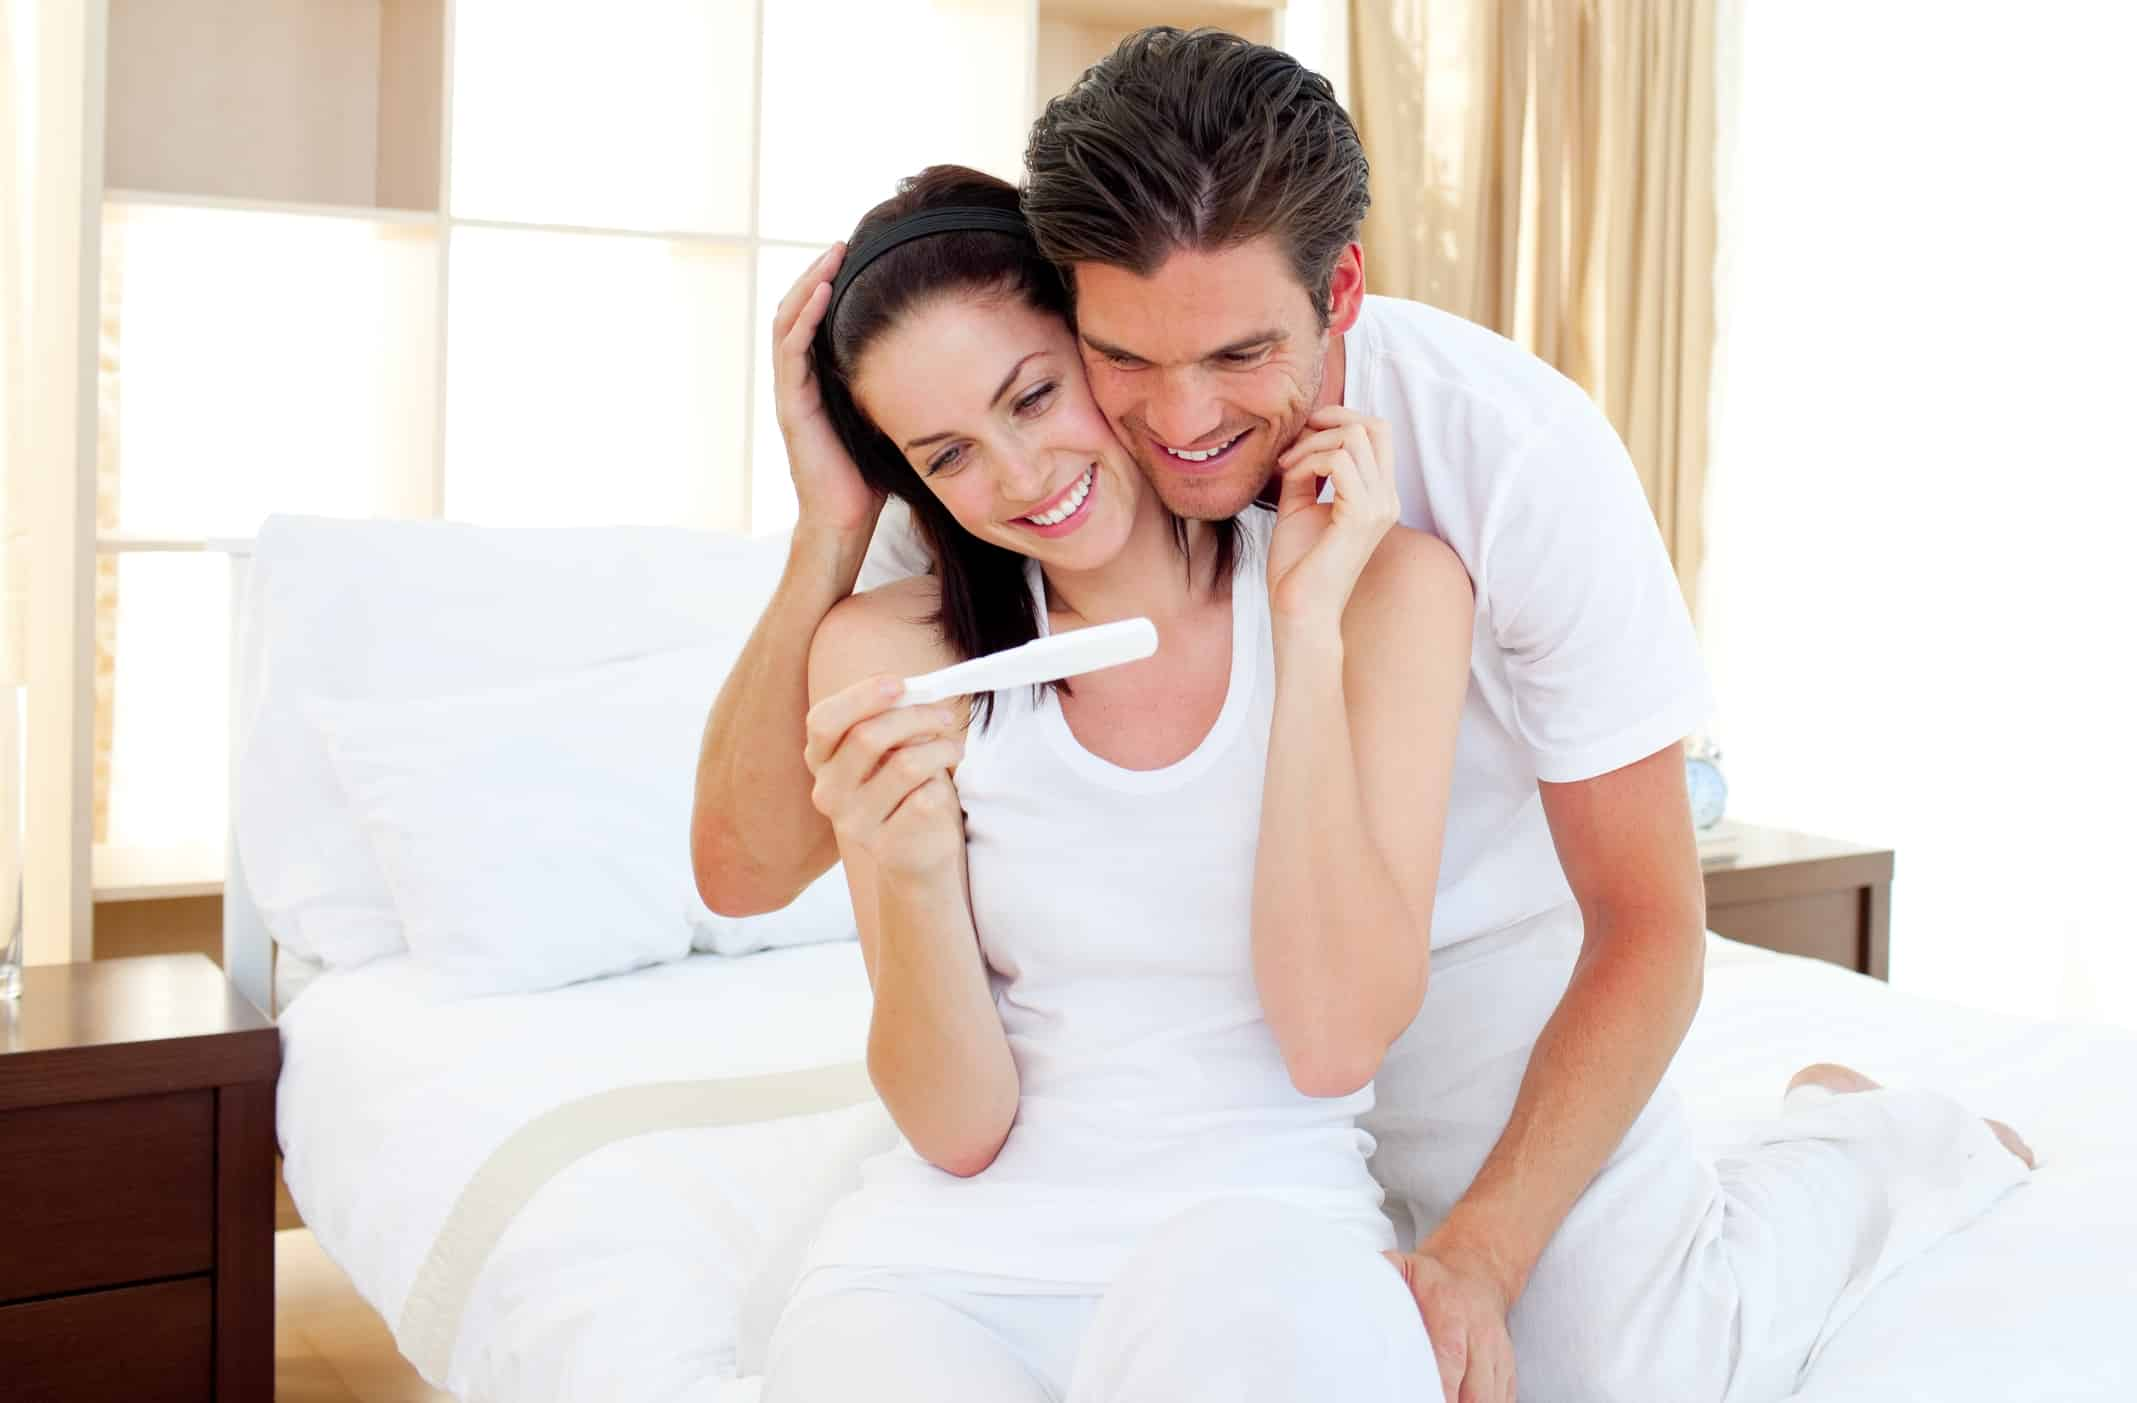 Caucasian couple all in white smiling and holding a pregnancy test.